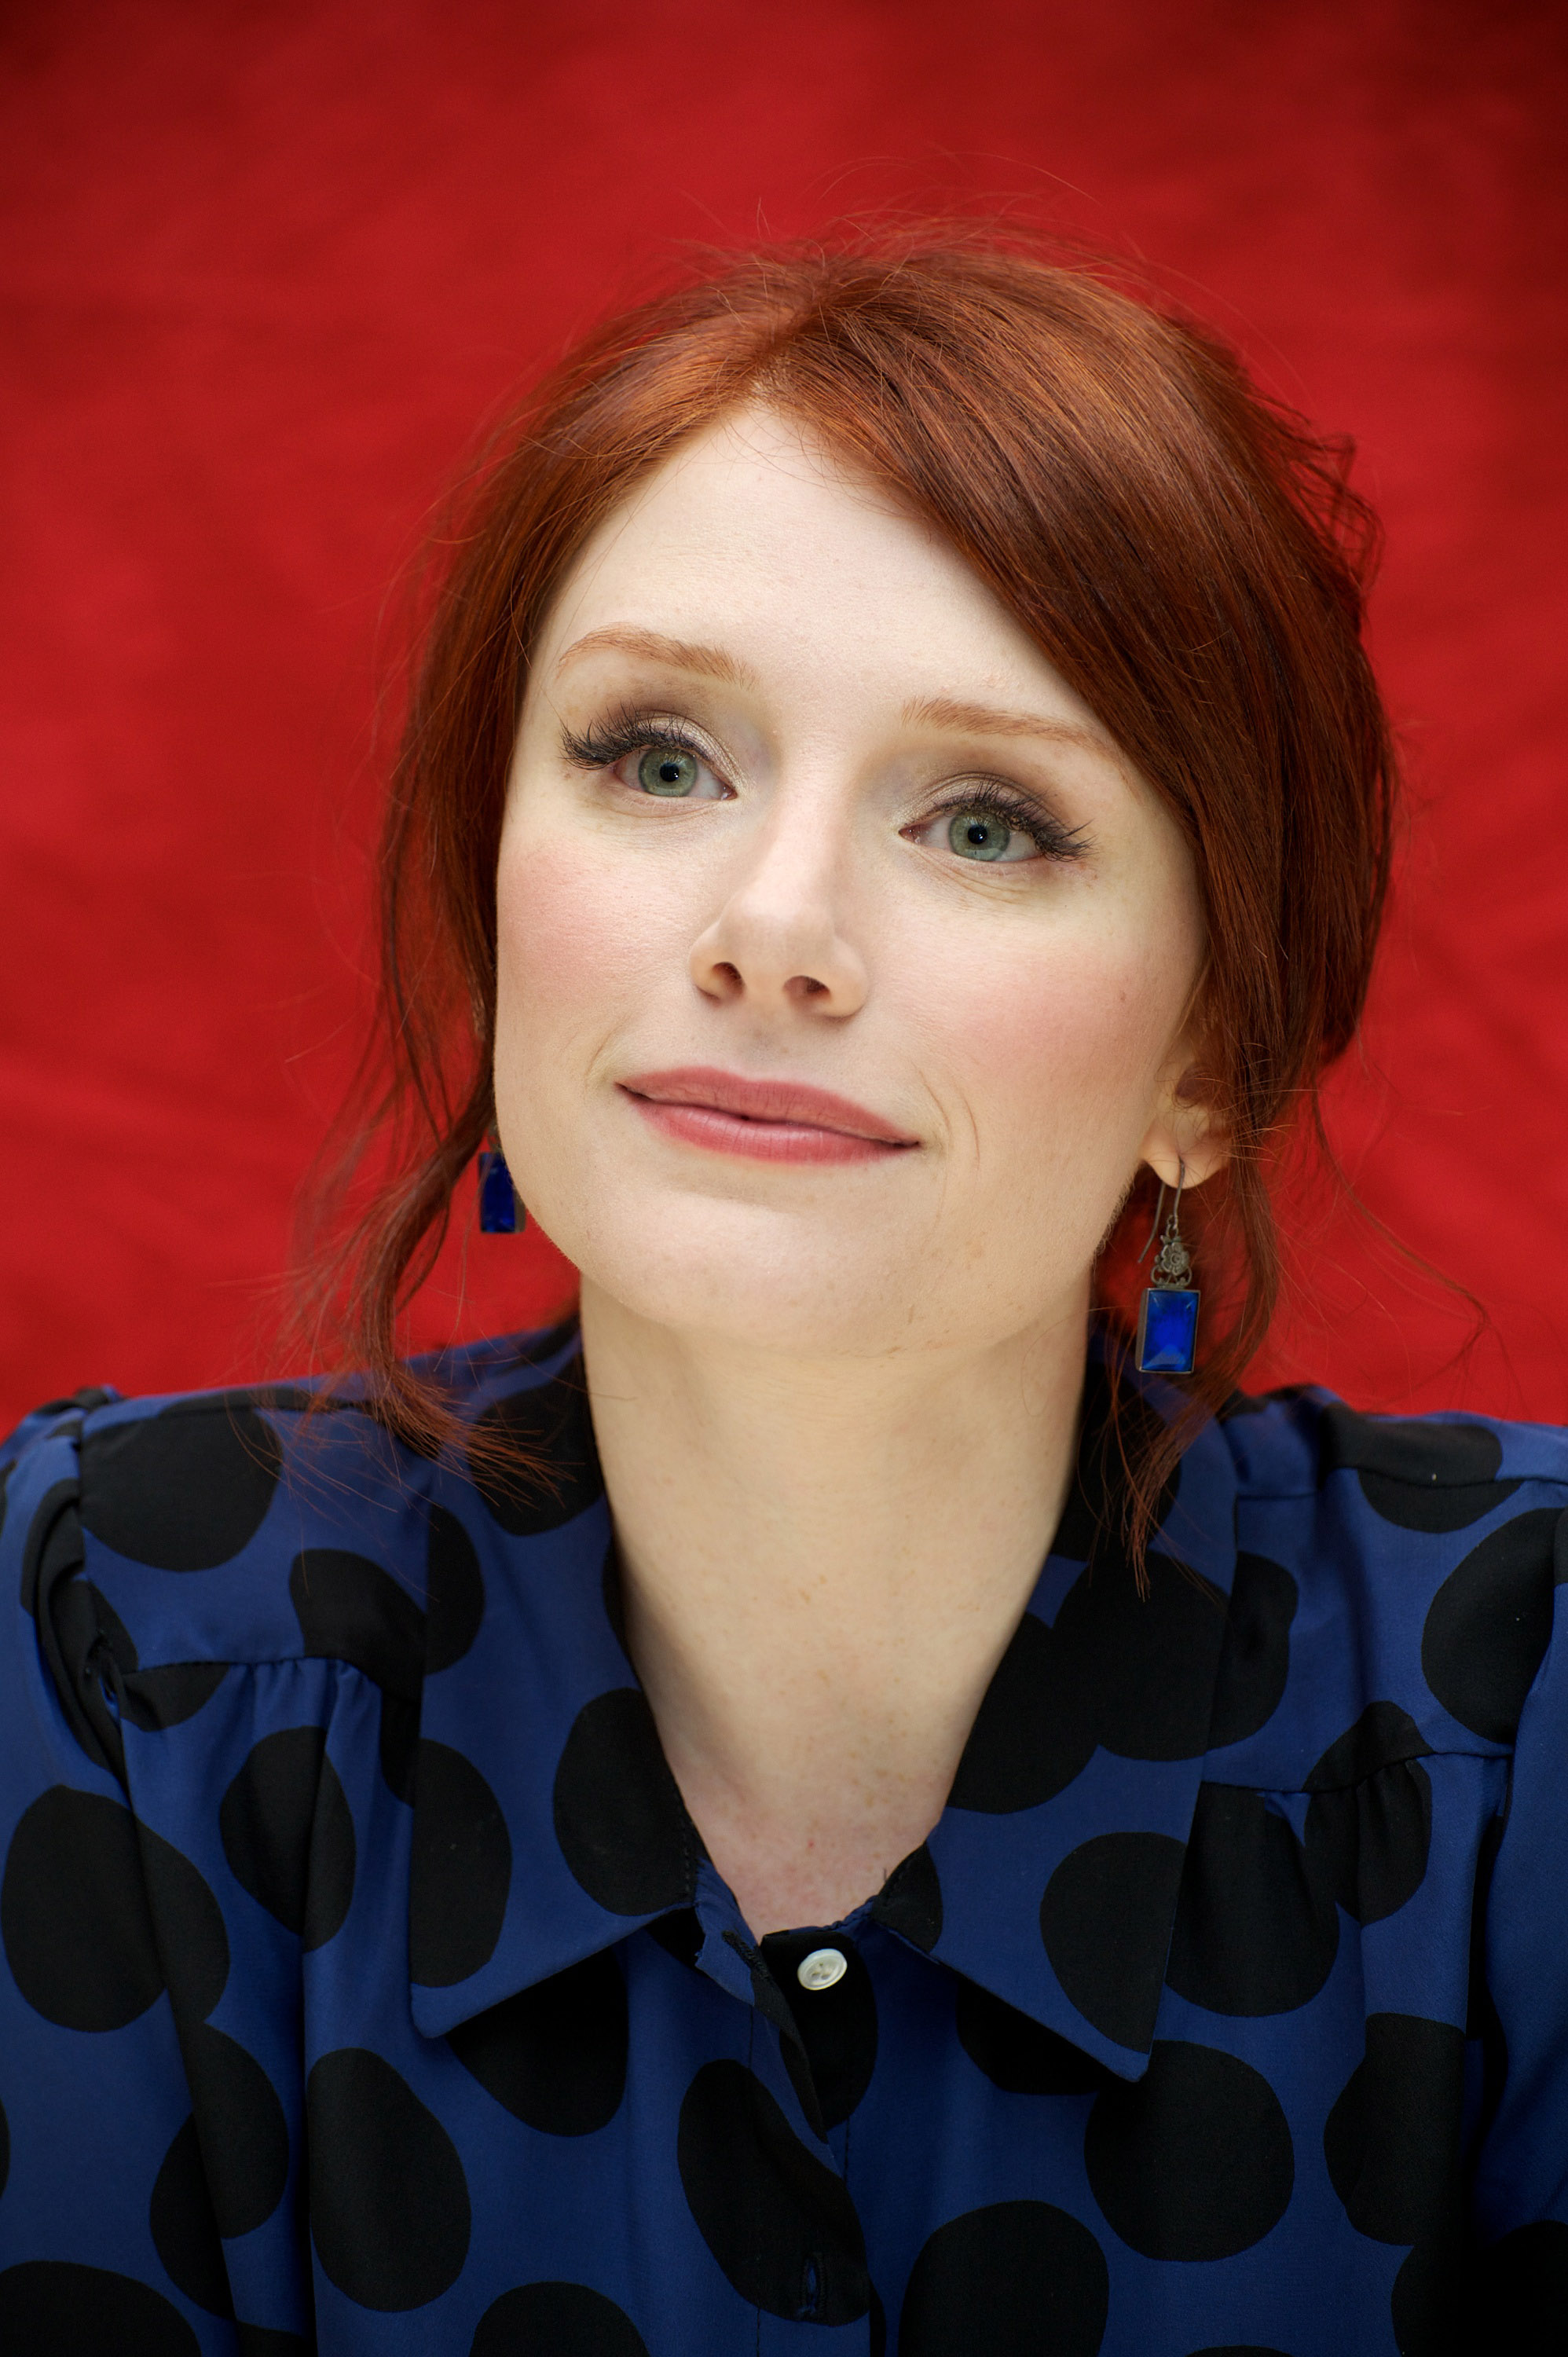 Bryce Dallas Howard high definition wallpapers